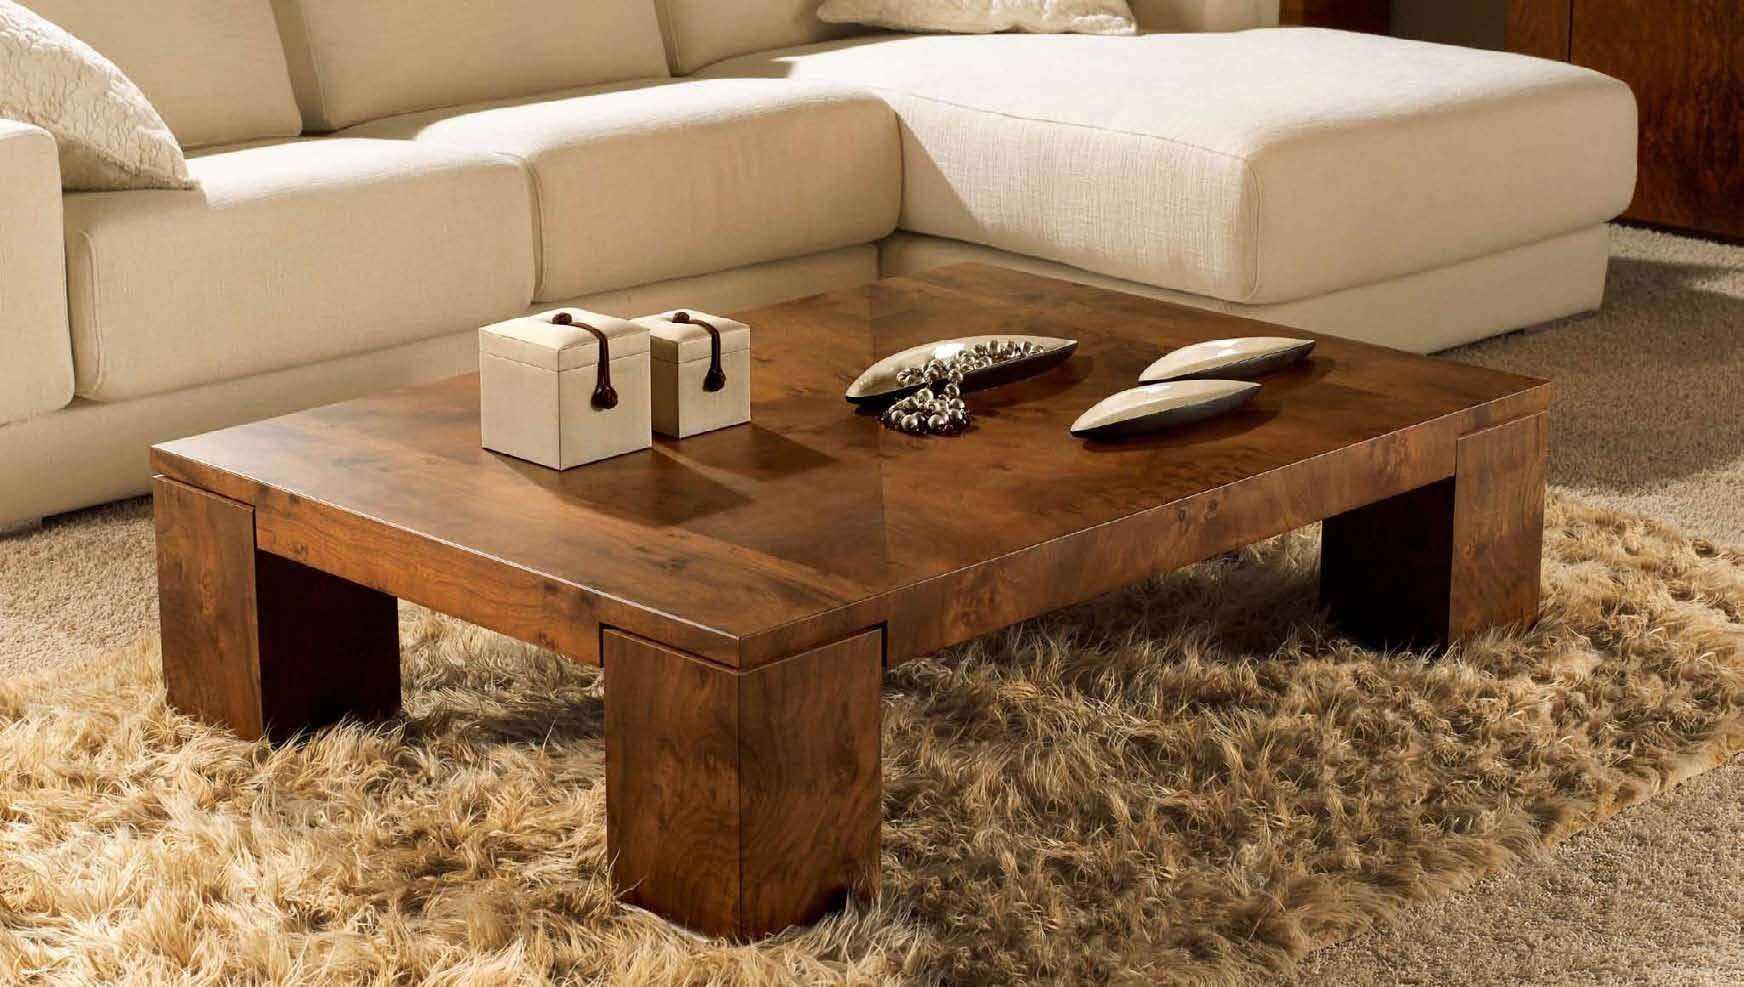 Most Up To Date Big Black Coffee Tables Within Big Floor Flower Vase Idea Big Vase Decor Set Coffee Tables For (View 15 of 20)